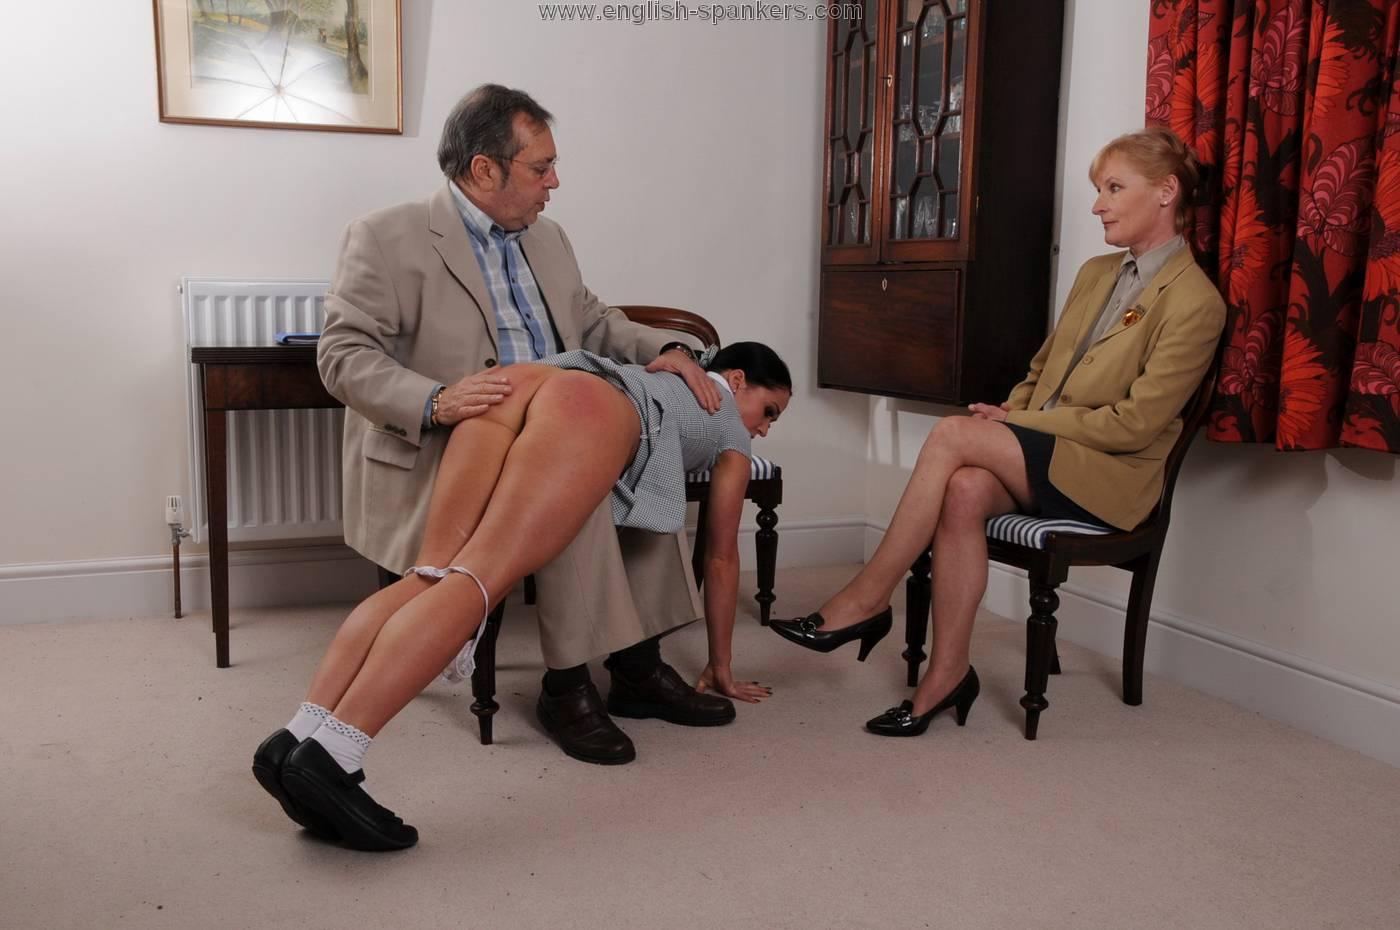 spanking chats